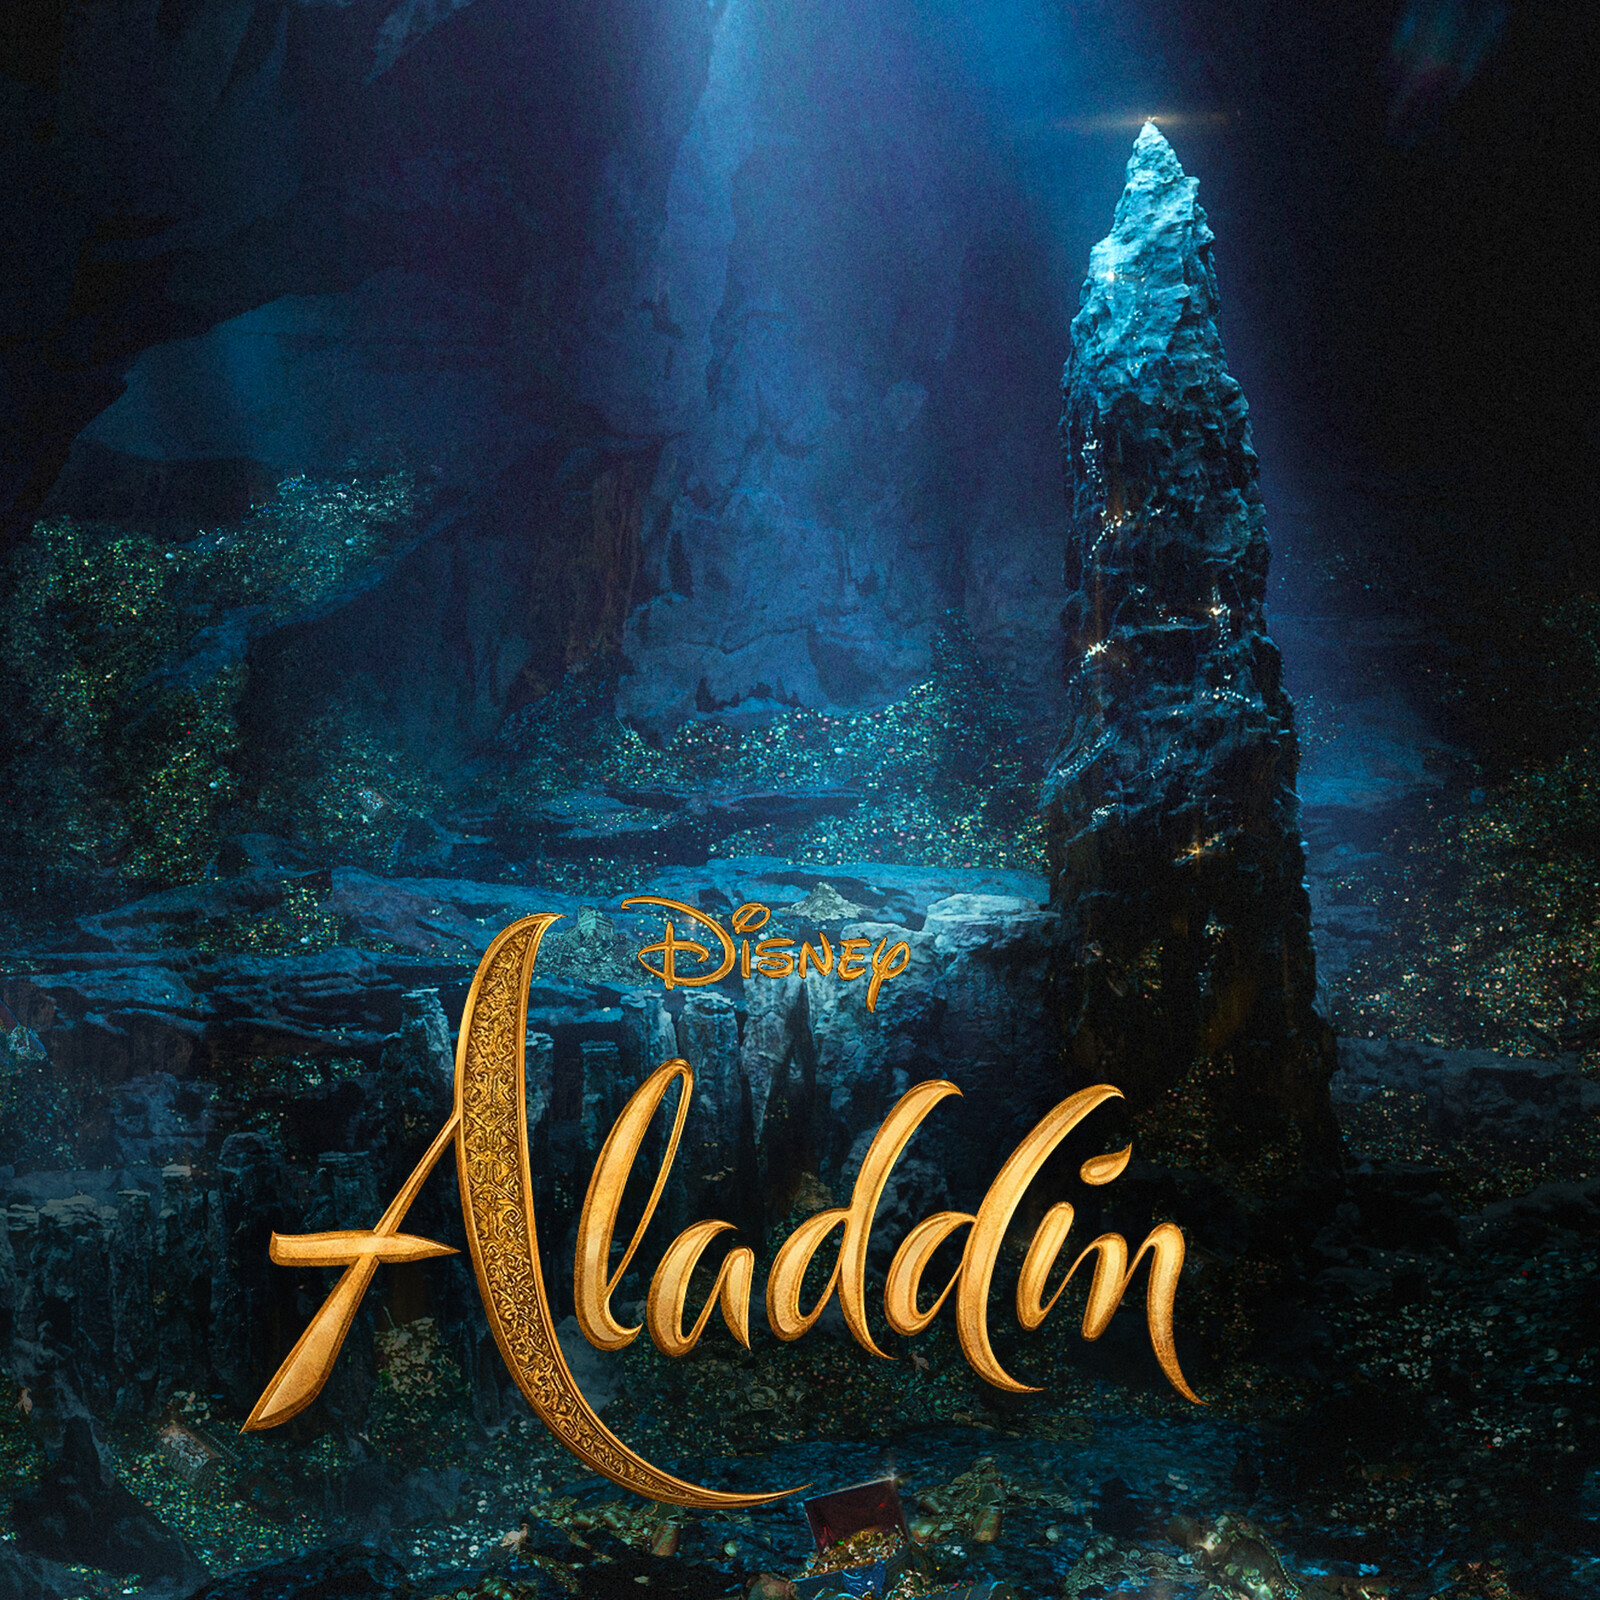 Aladdin. VFX work for the Cave